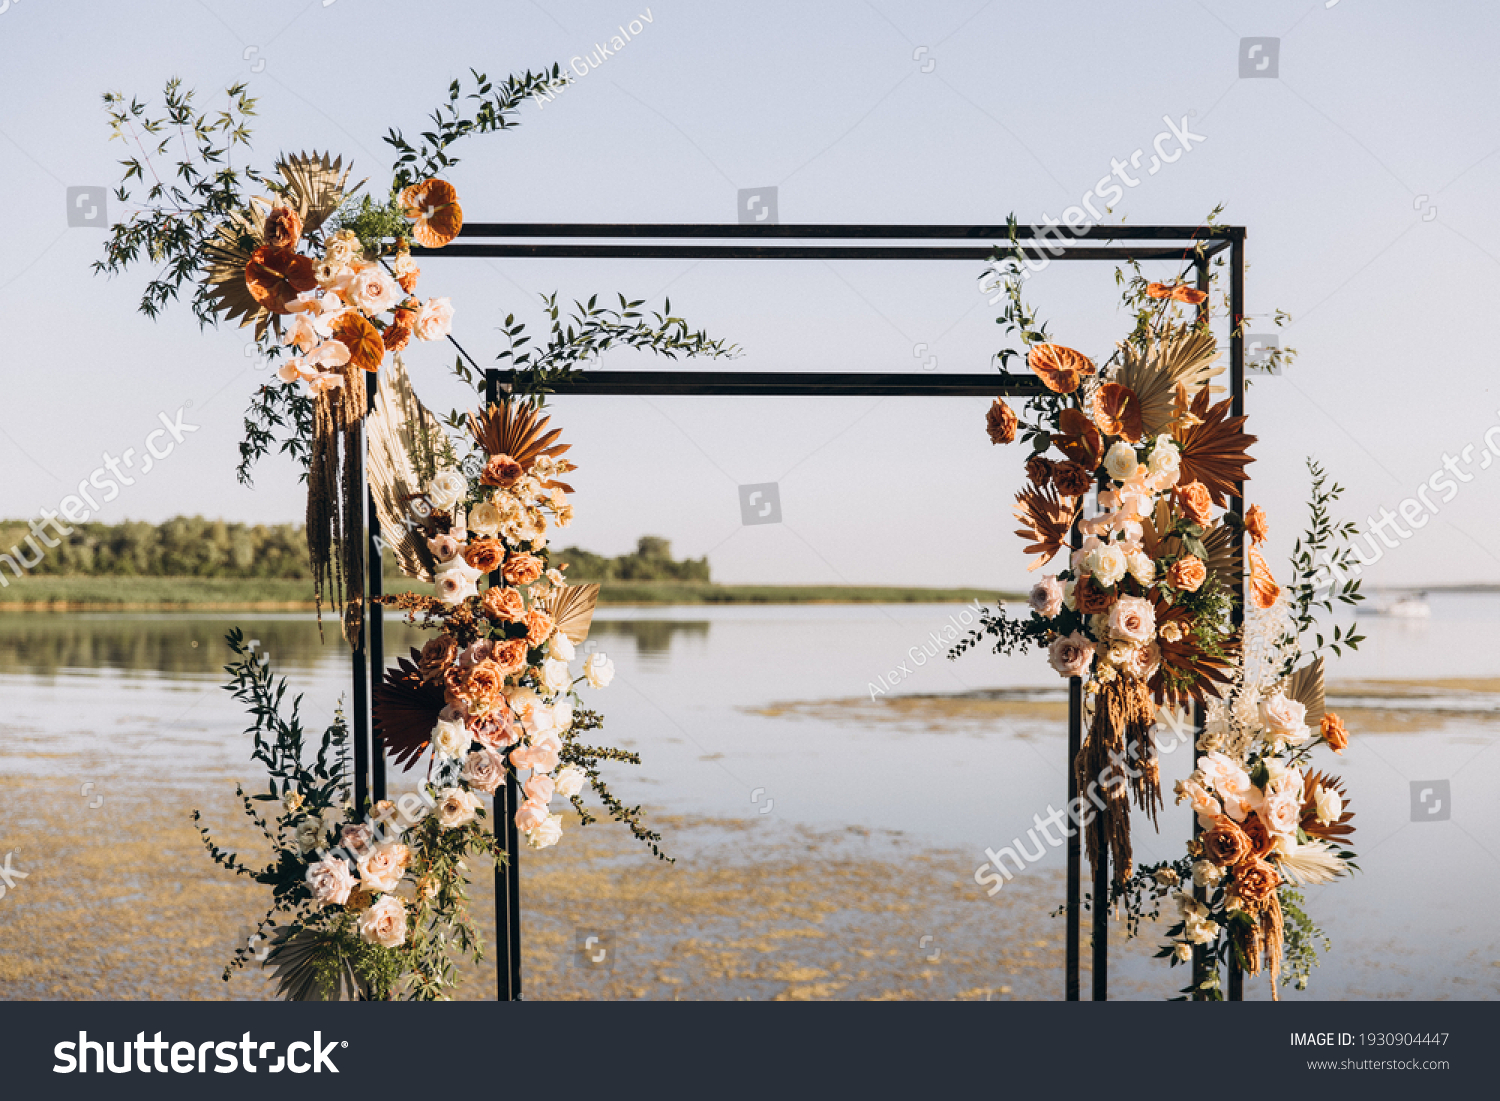 Wedding ceremony. On a green meadow on the seashore there is an arch decorated with flower arrangements, chairs for guests, candles and lamps #1930904447